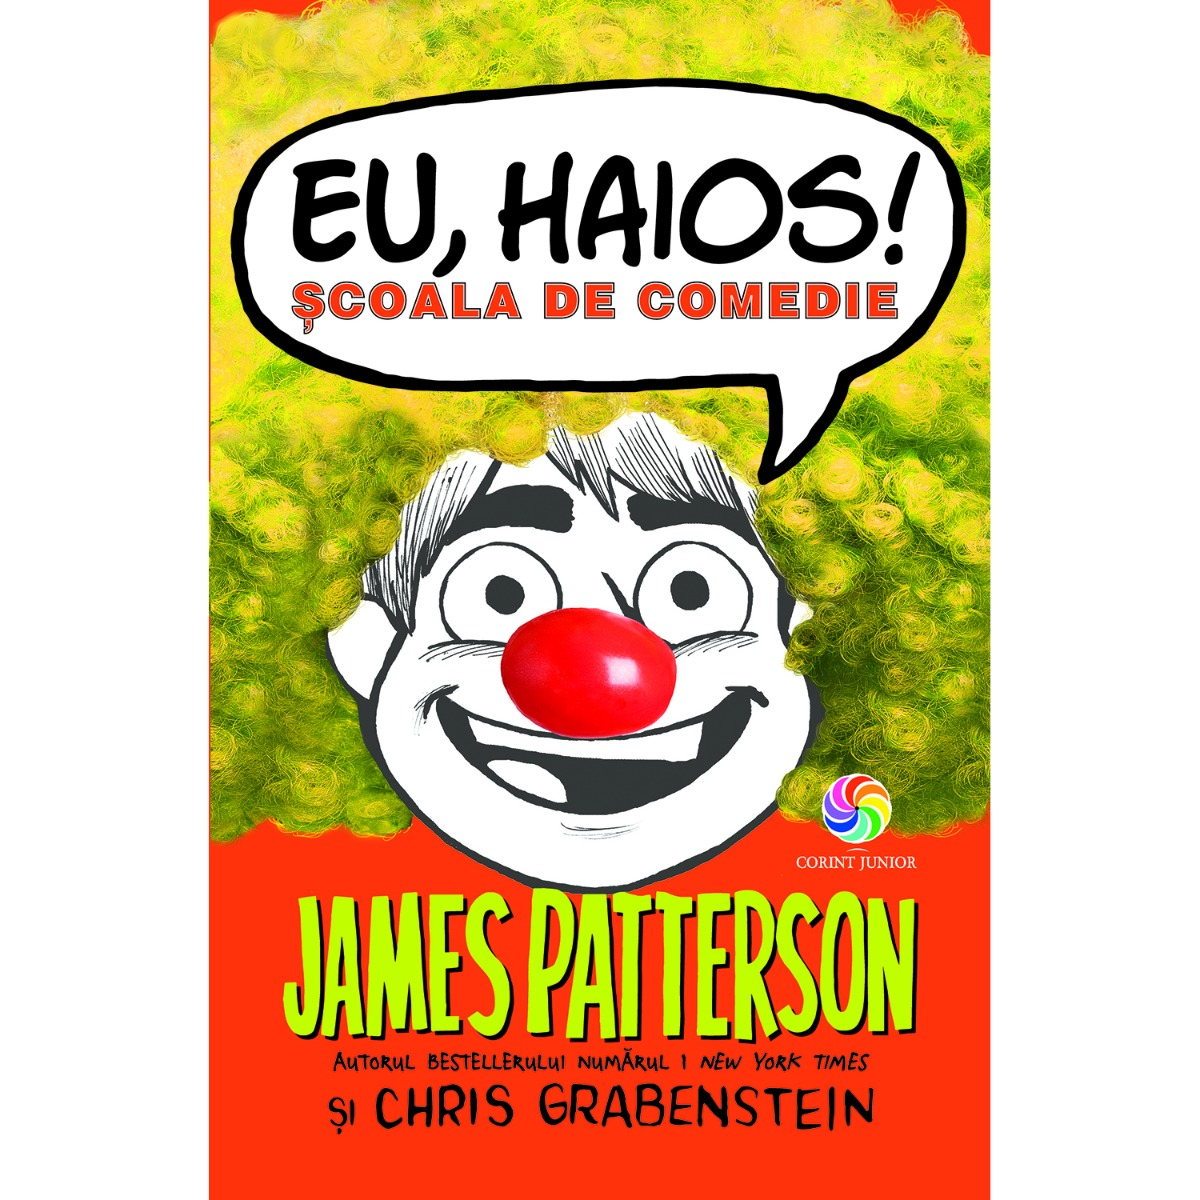 Carte Editura Corint, Generala. Eu haios! Scoala de comedie, James Patterson, Chris Grabenstein